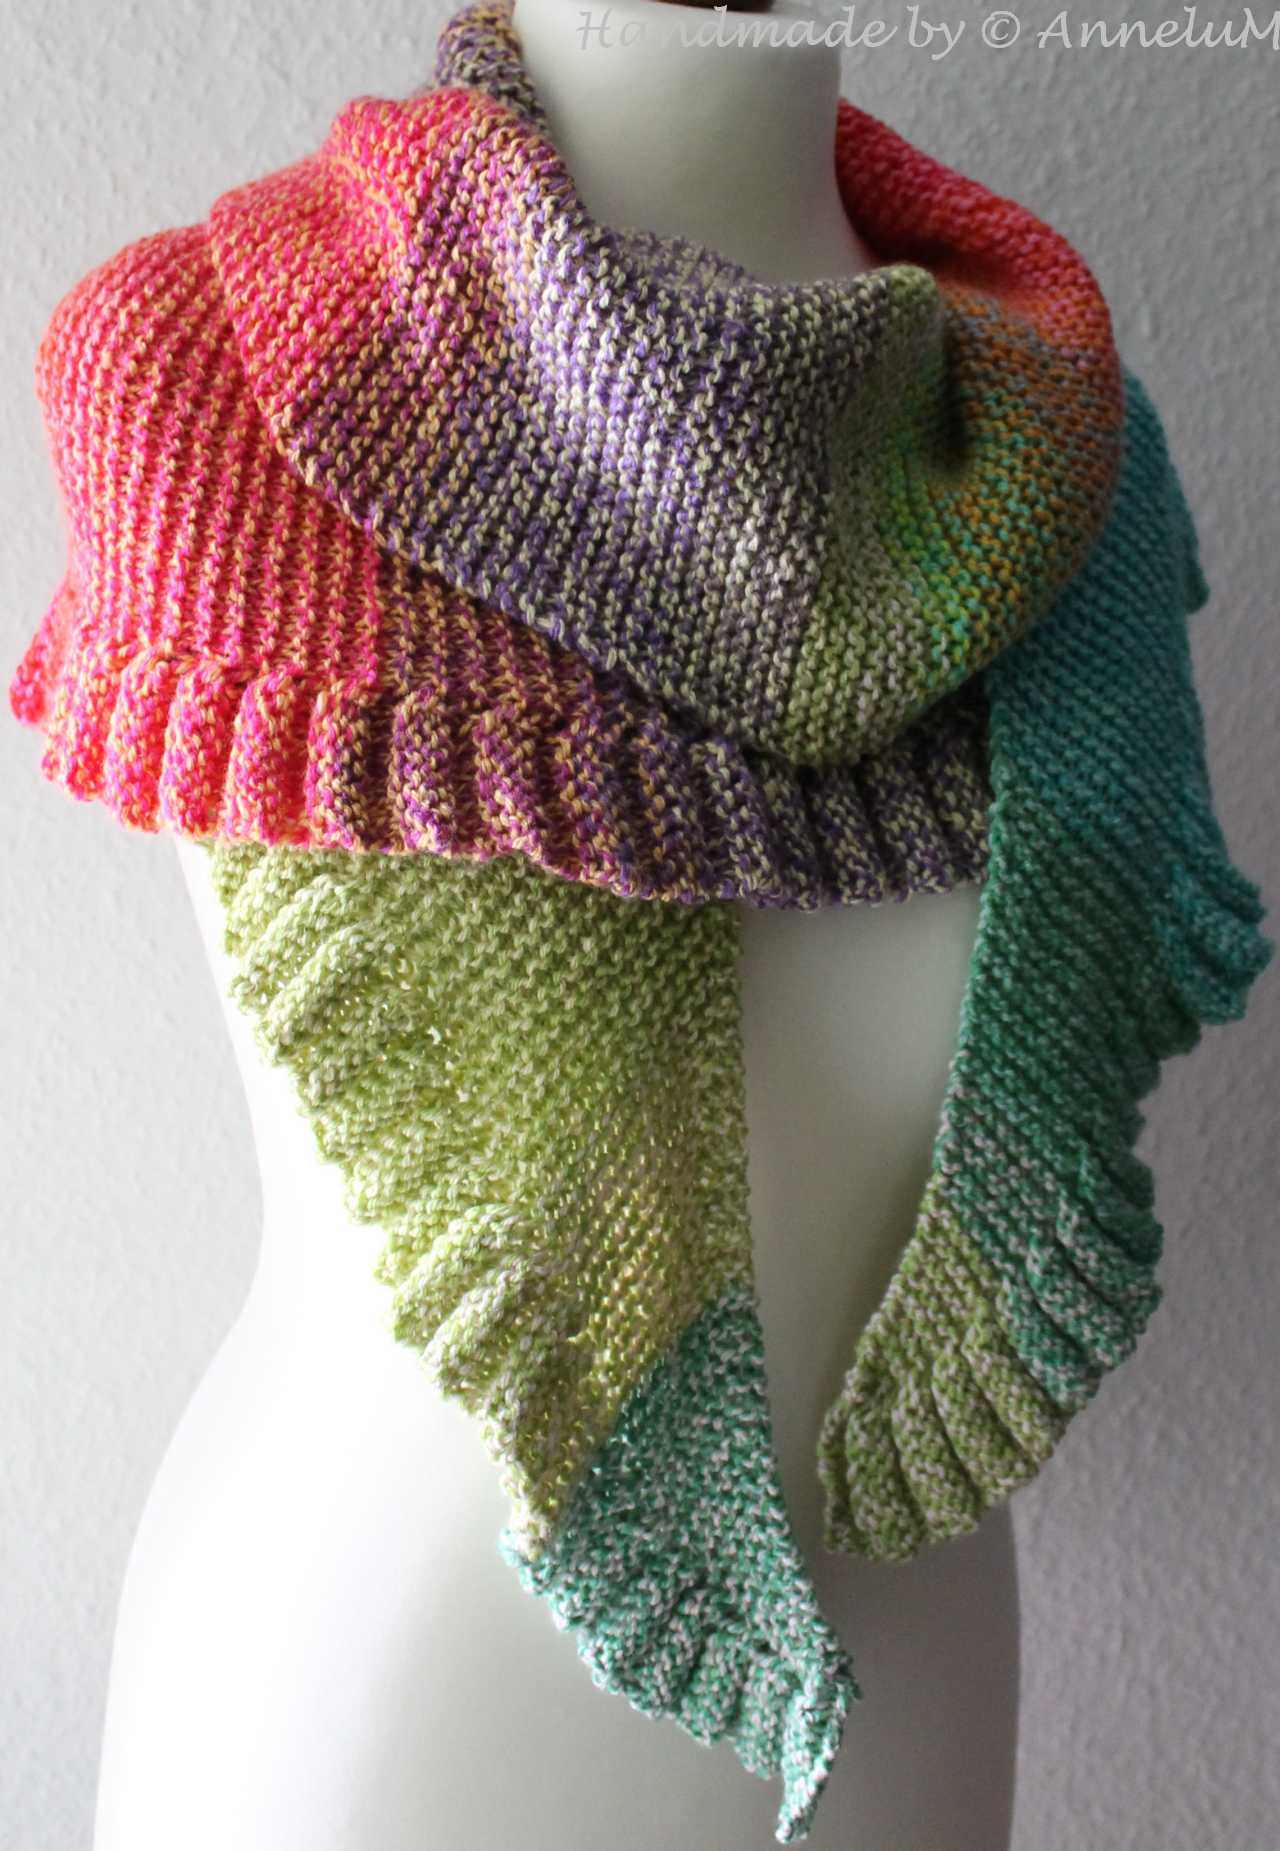 Lollipop-Shawl Handmade by AnneluM